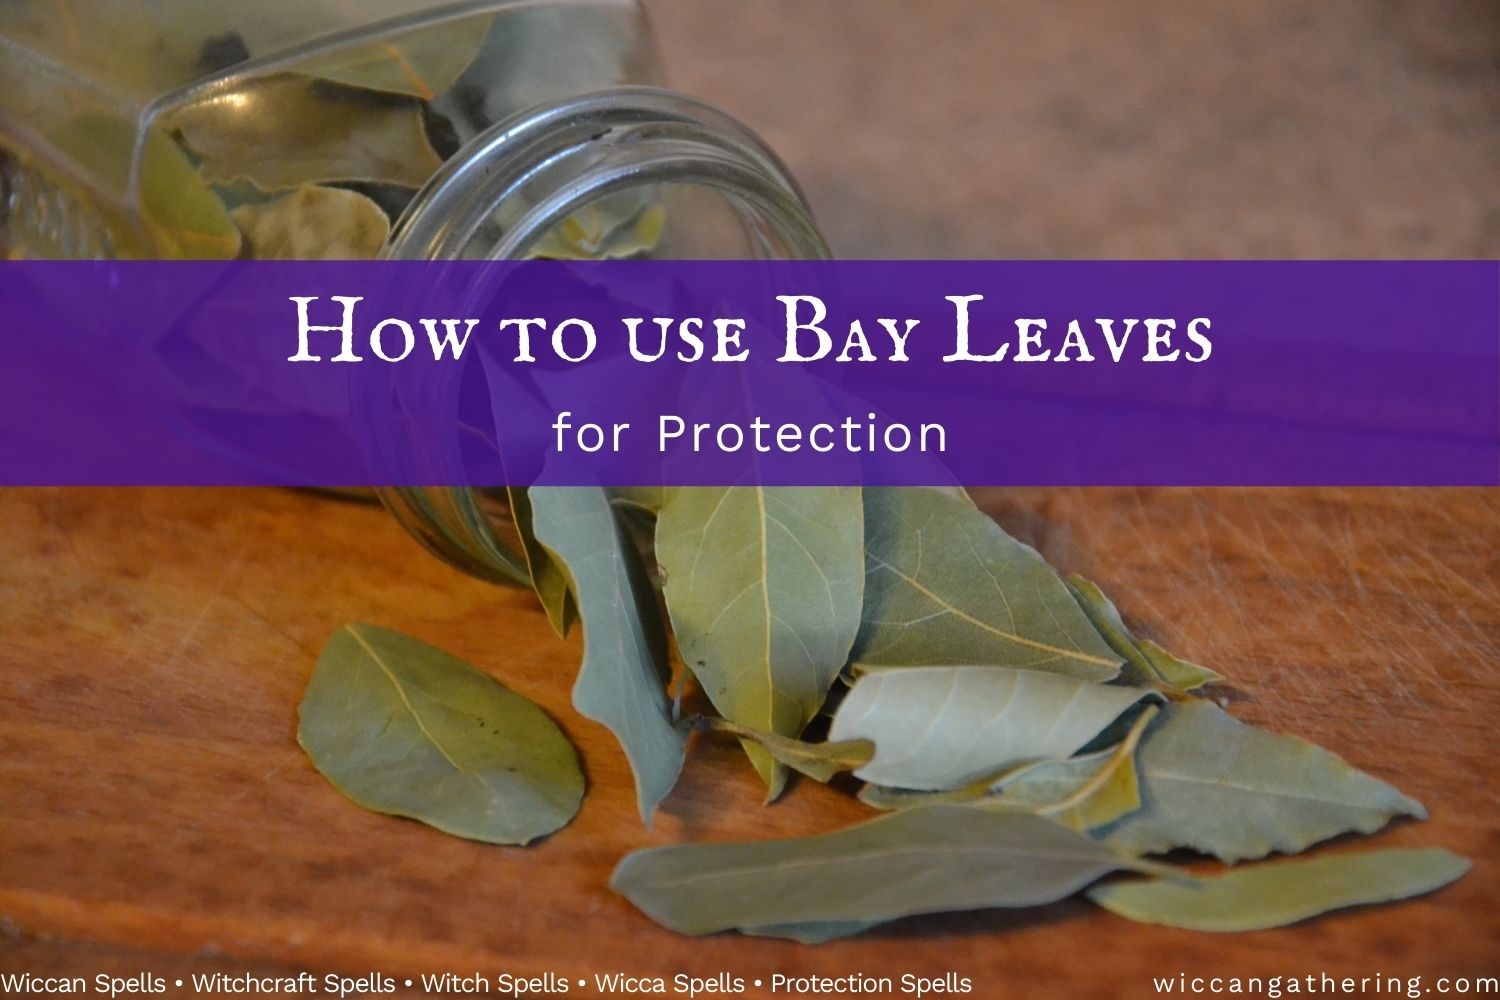 How To Use Bay Leaves For Protection